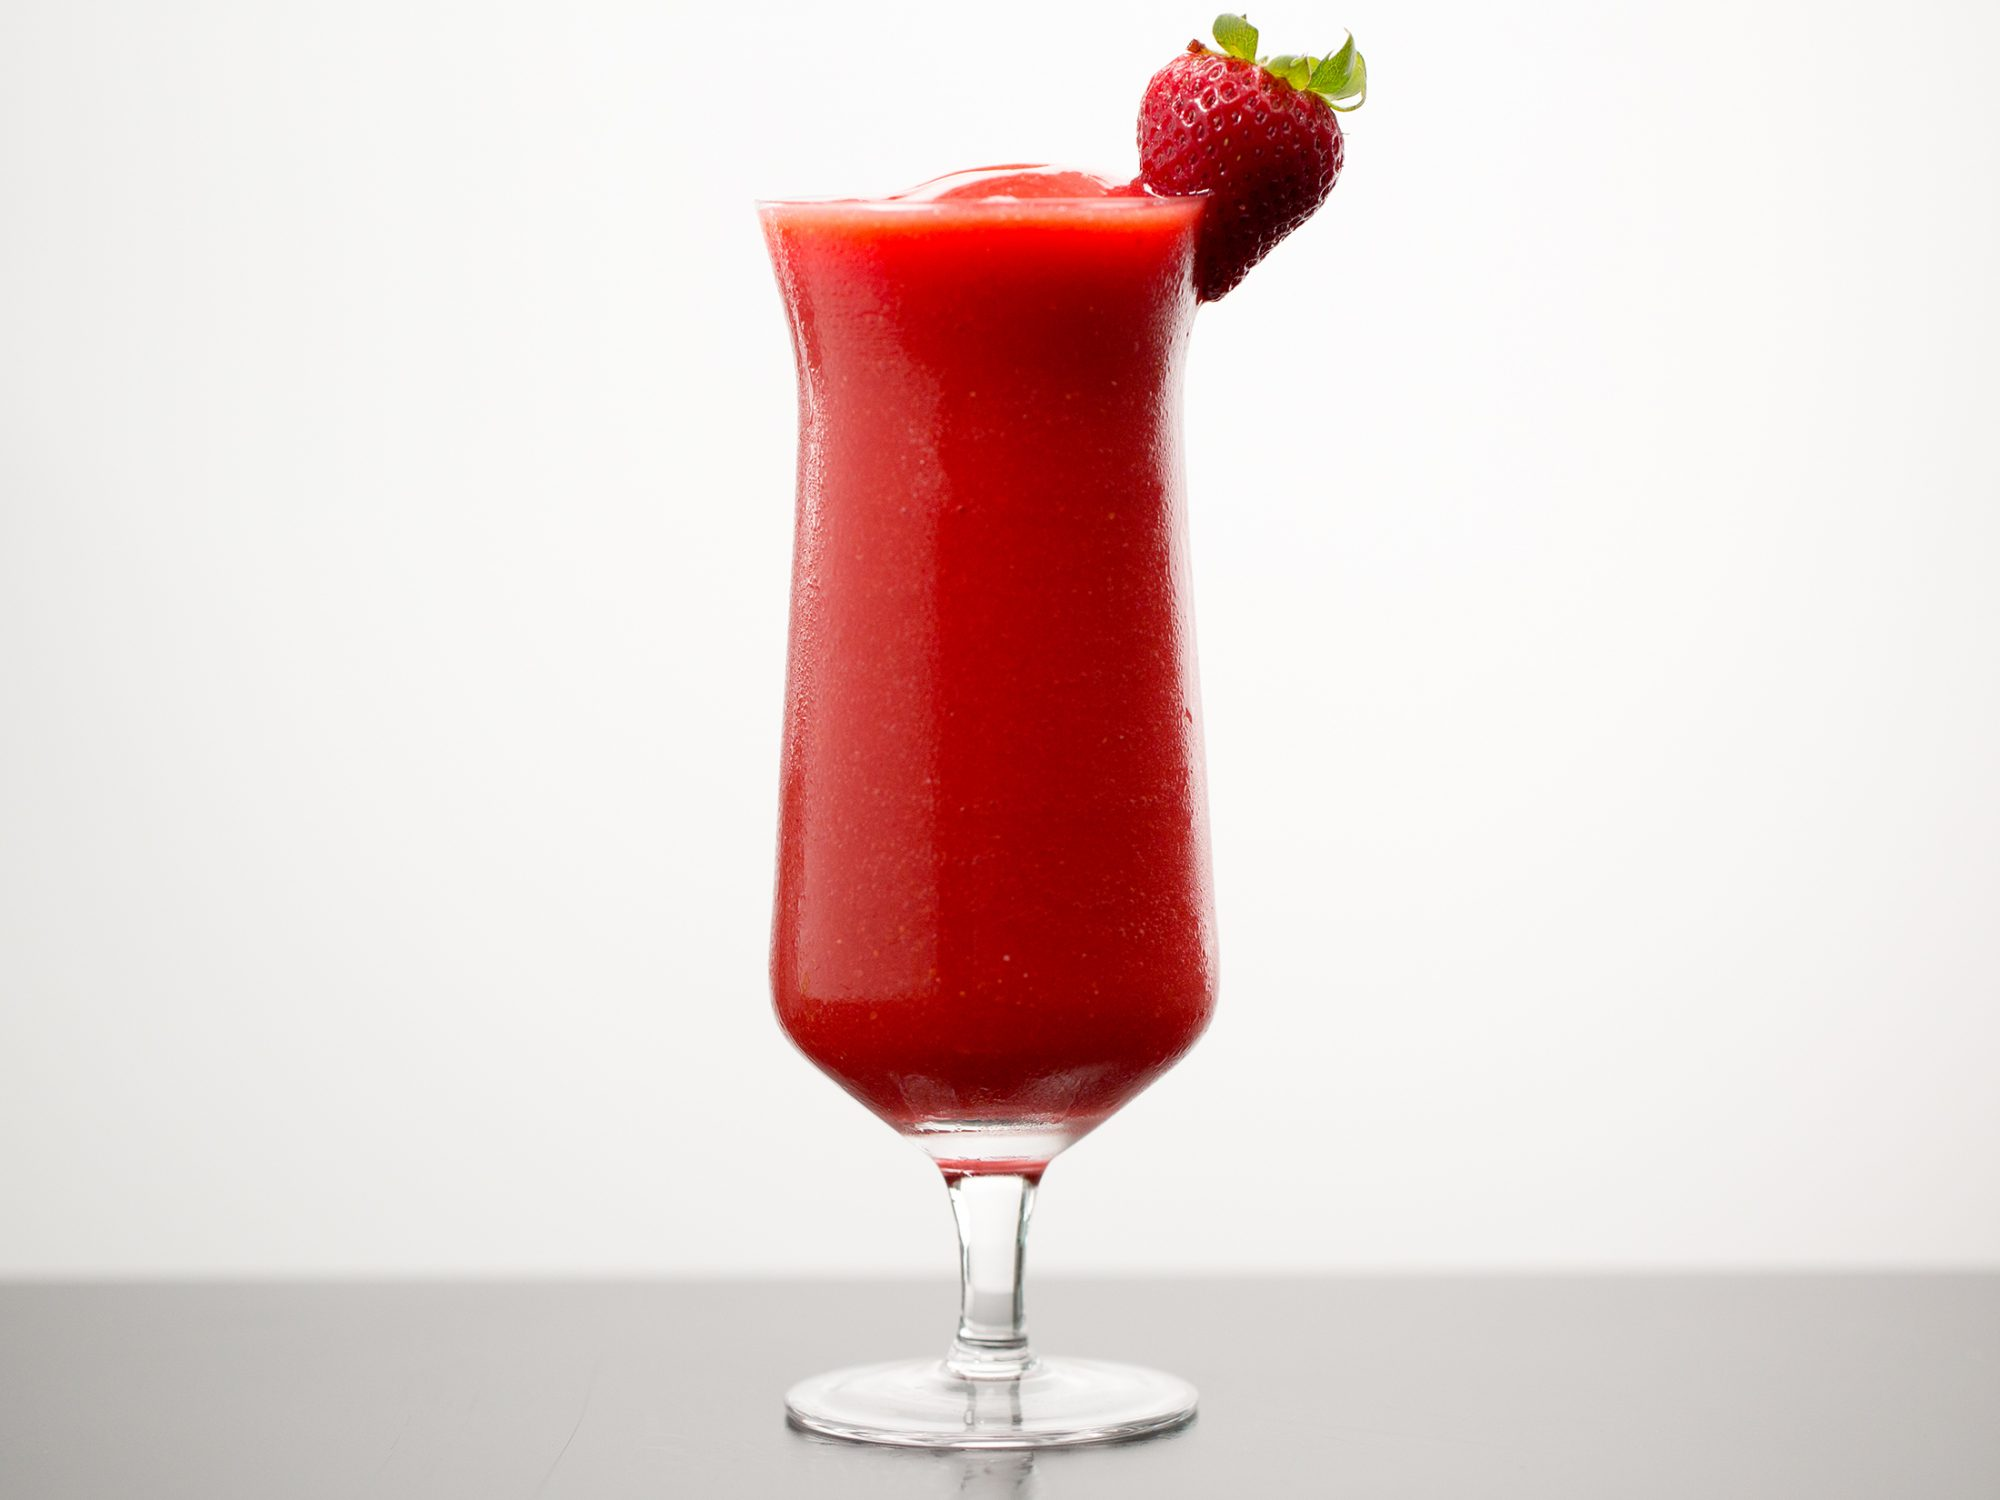 Simple Strawberry Daquiri image